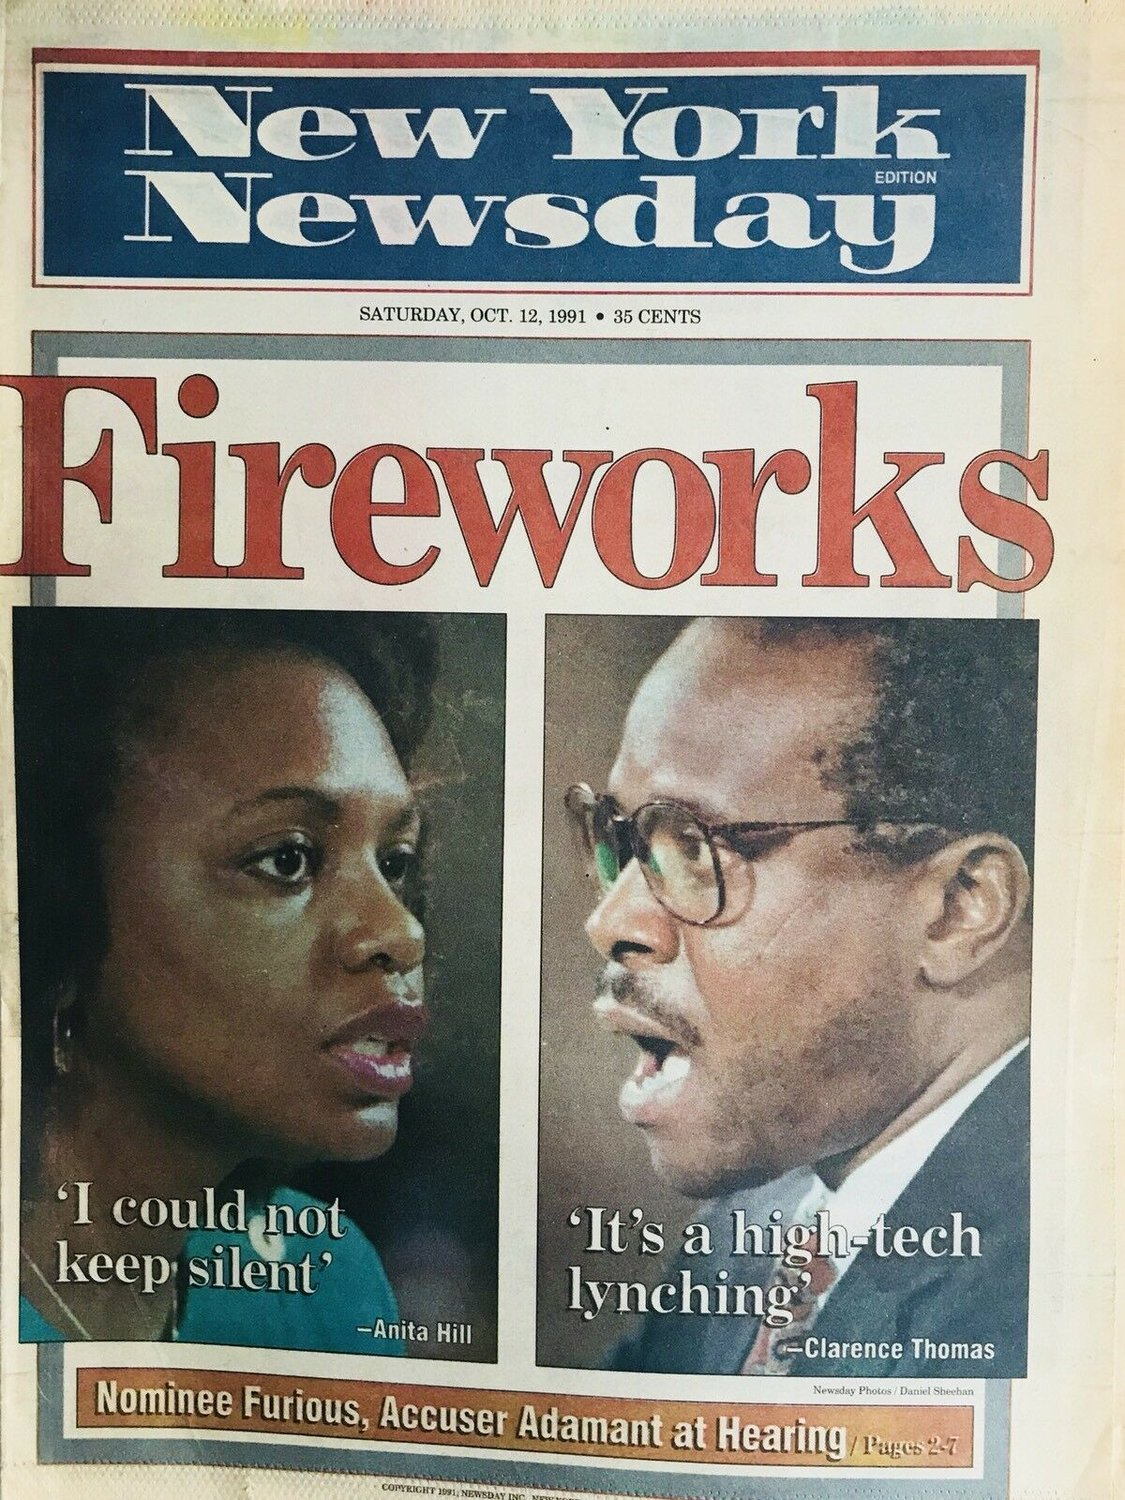 While working for Newsday in 1991, Tim Phelps broke the story about Anita Hill's accusations of sexual harassment in the workplace against U.S. Supreme Court nominee Clarence Thomas. This cover story about the confirmation hearings was published shortly afterwards.